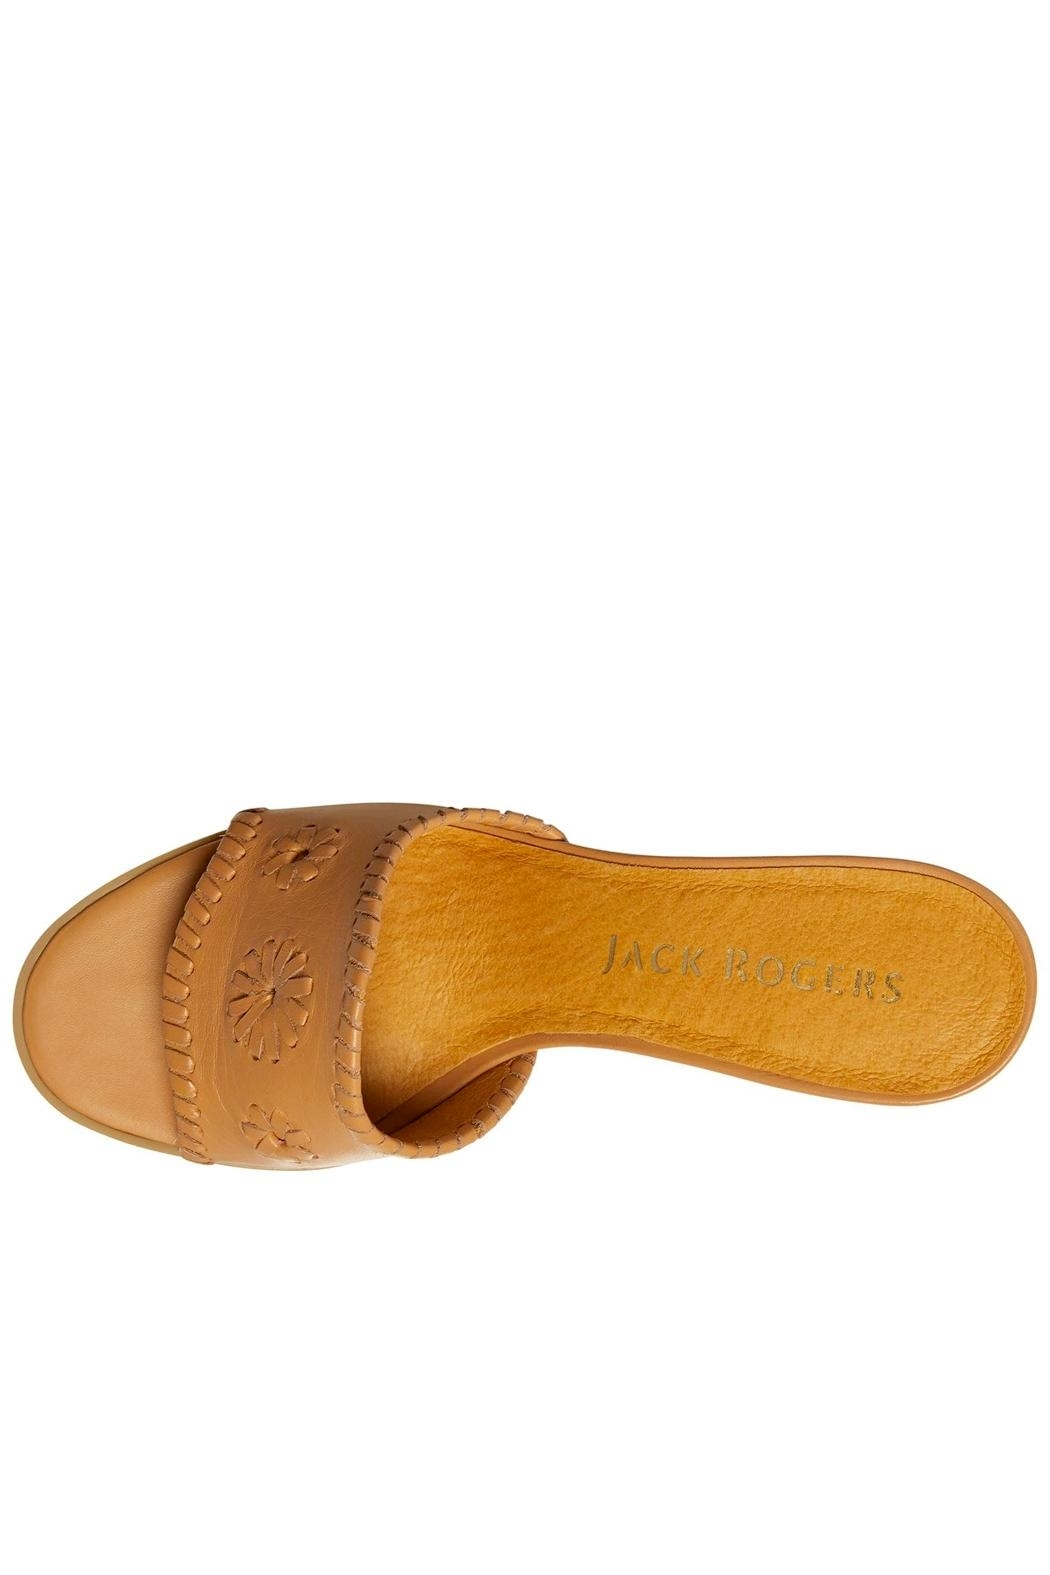 Jack Rogers Rory Mid Heel - Back Cropped Image